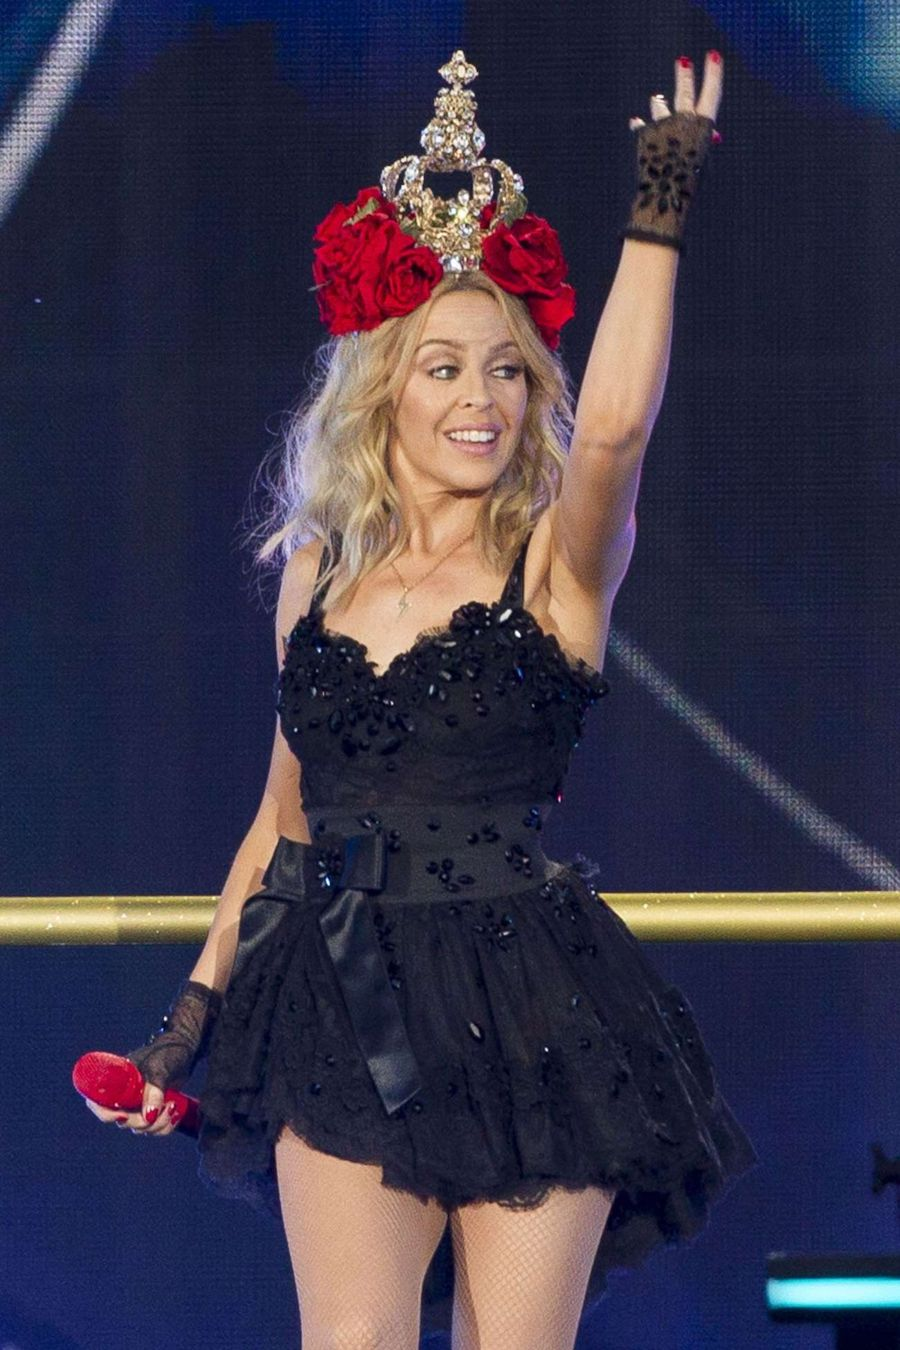 Kylie Minogue Performs at British Summer Time Festival